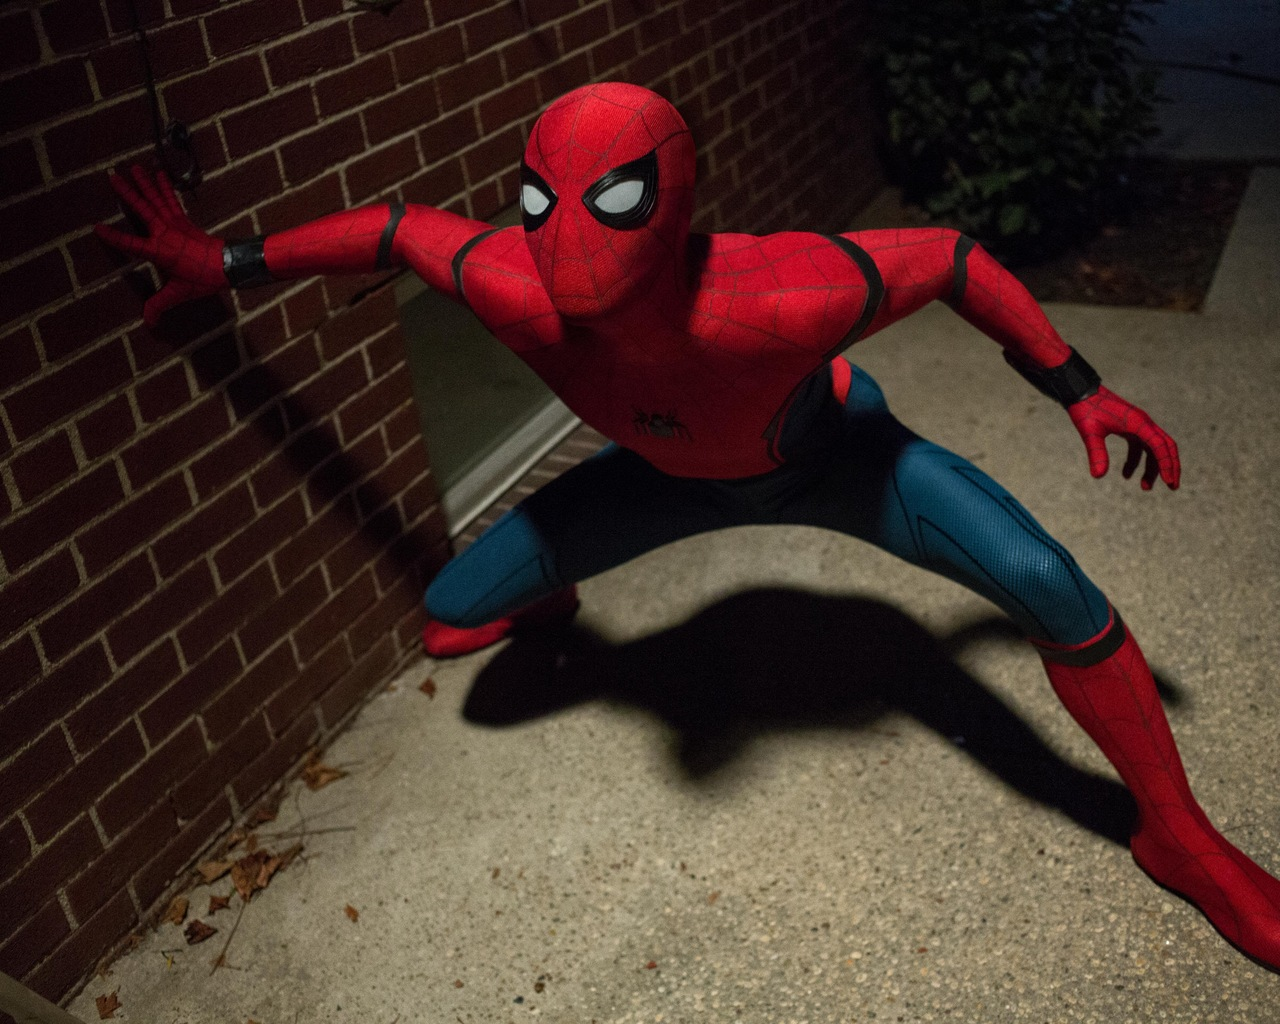 spiderman-homecoming-still-yq.jpg